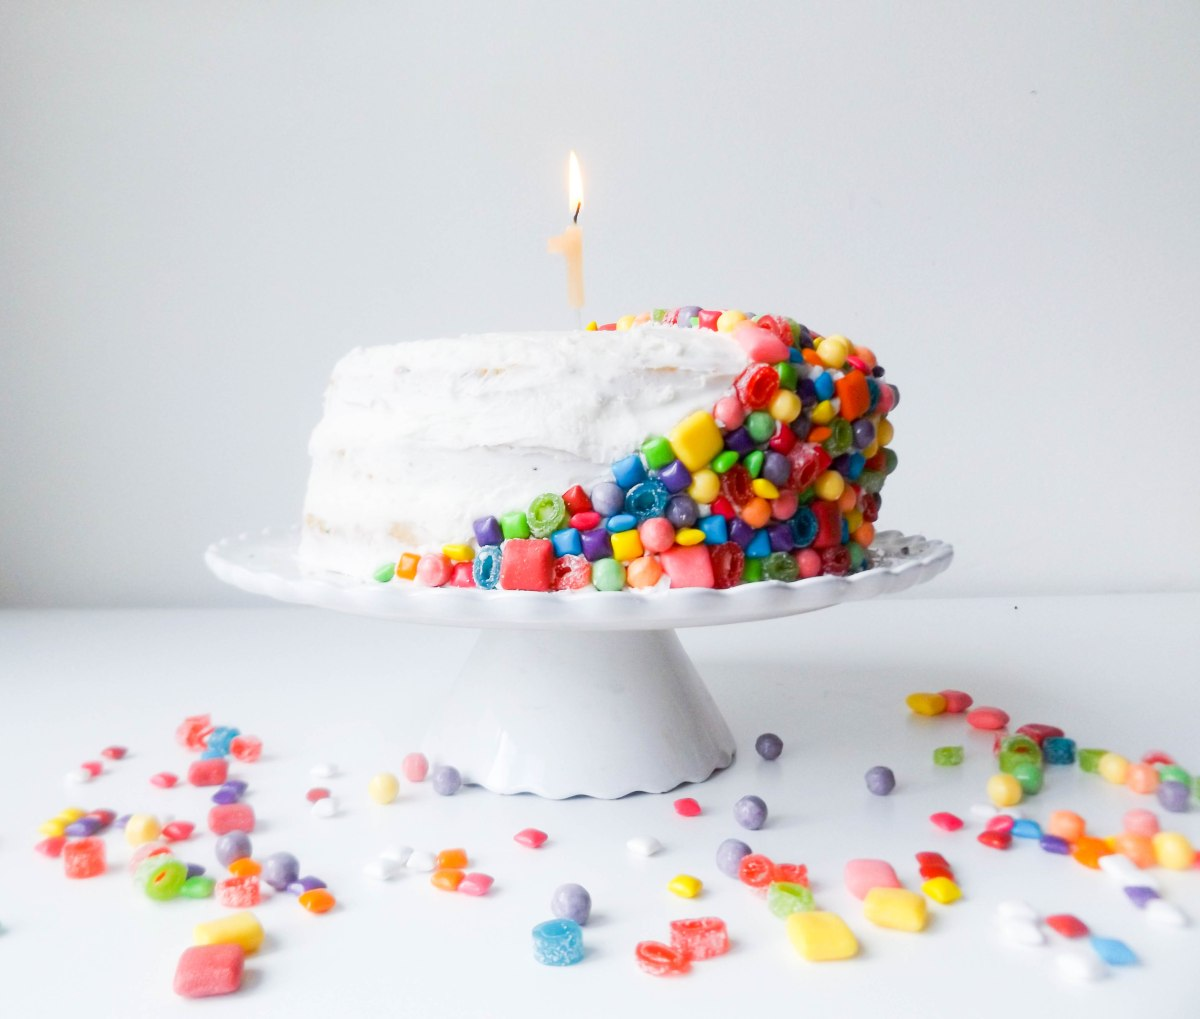 molly-yeh-funfetti-cake-1-of-1-14